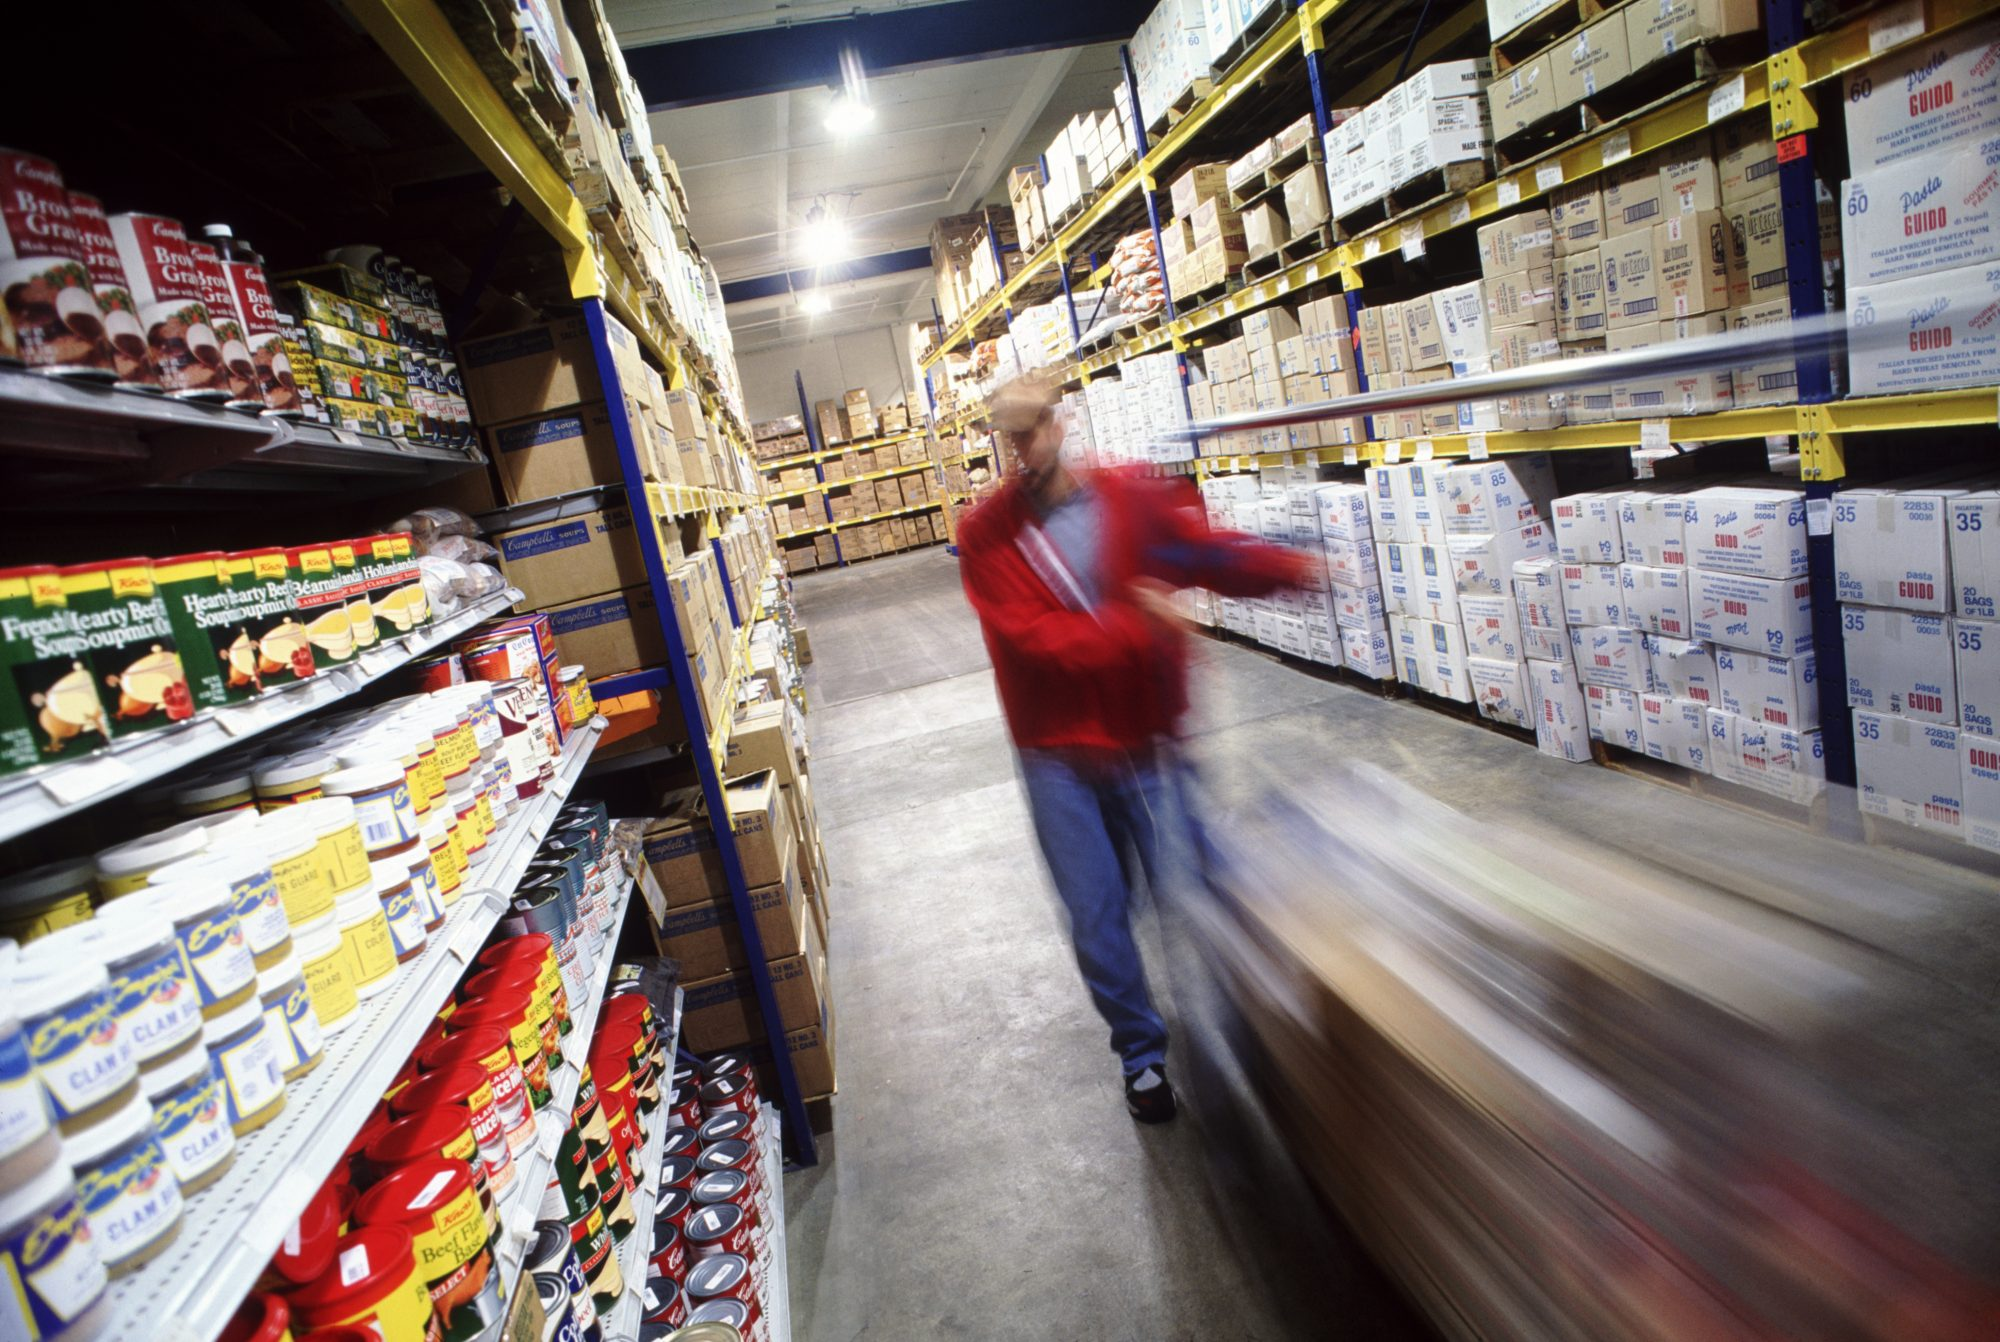 blurry store employee moving down an aisle